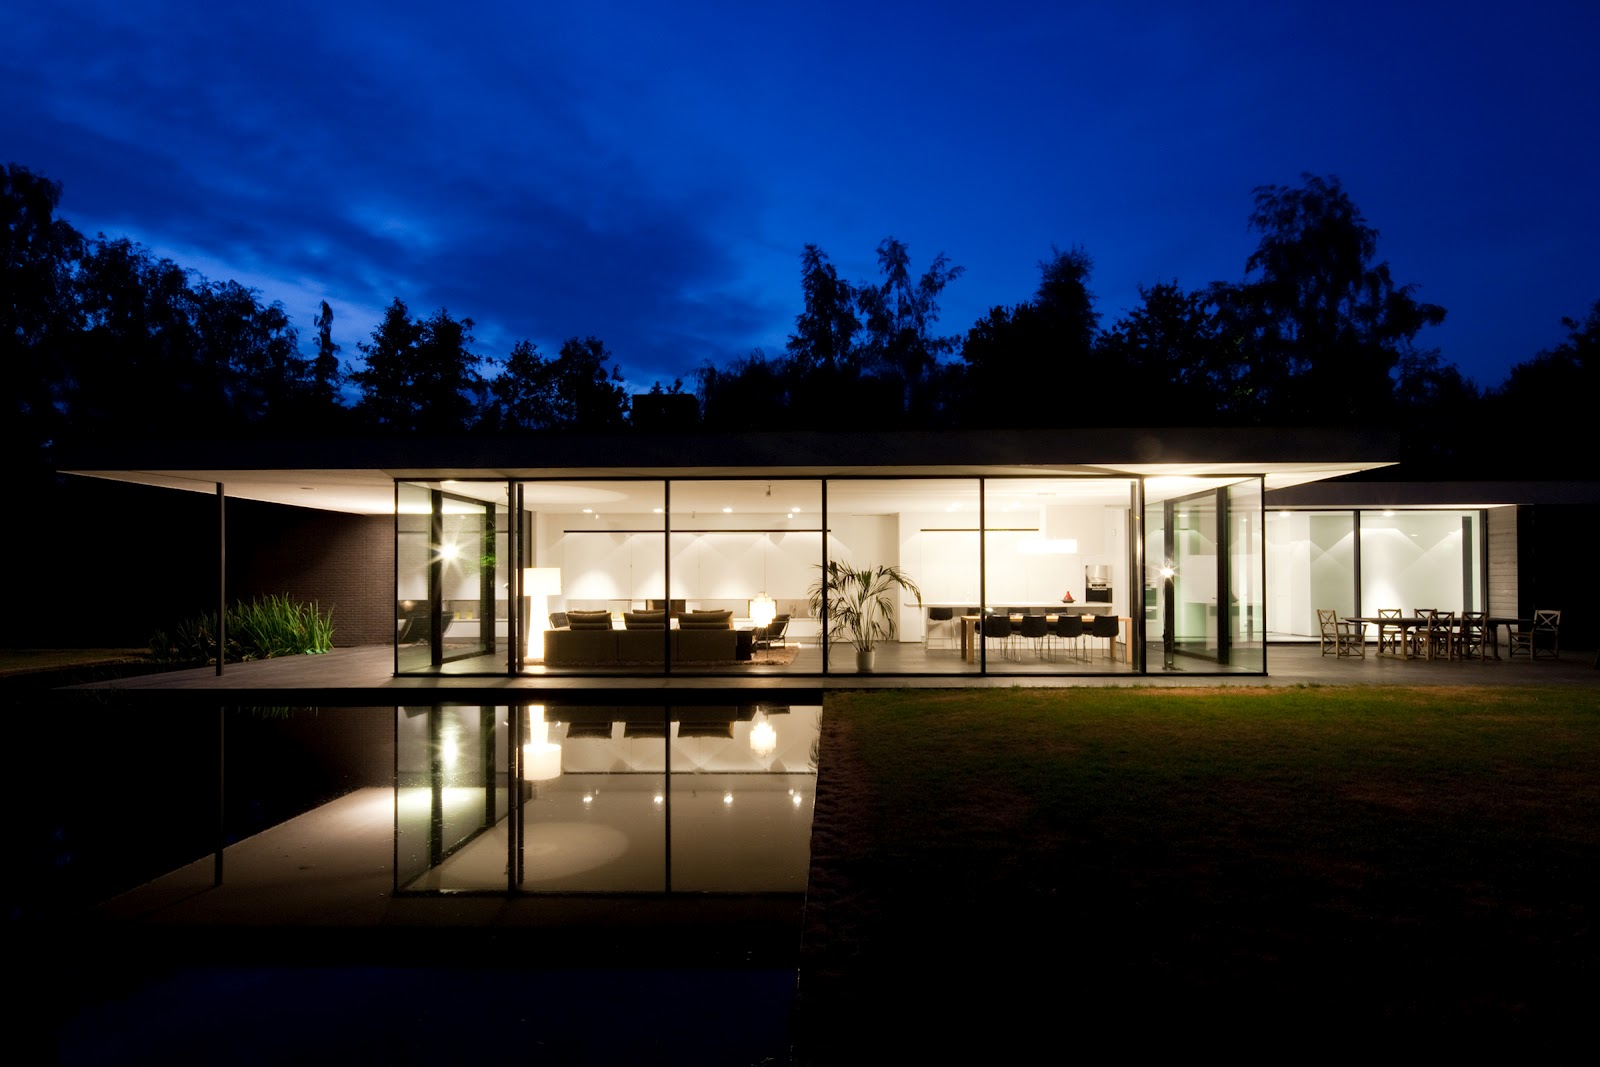 Ultra modern glass house architecture modern design by for New architecture design house